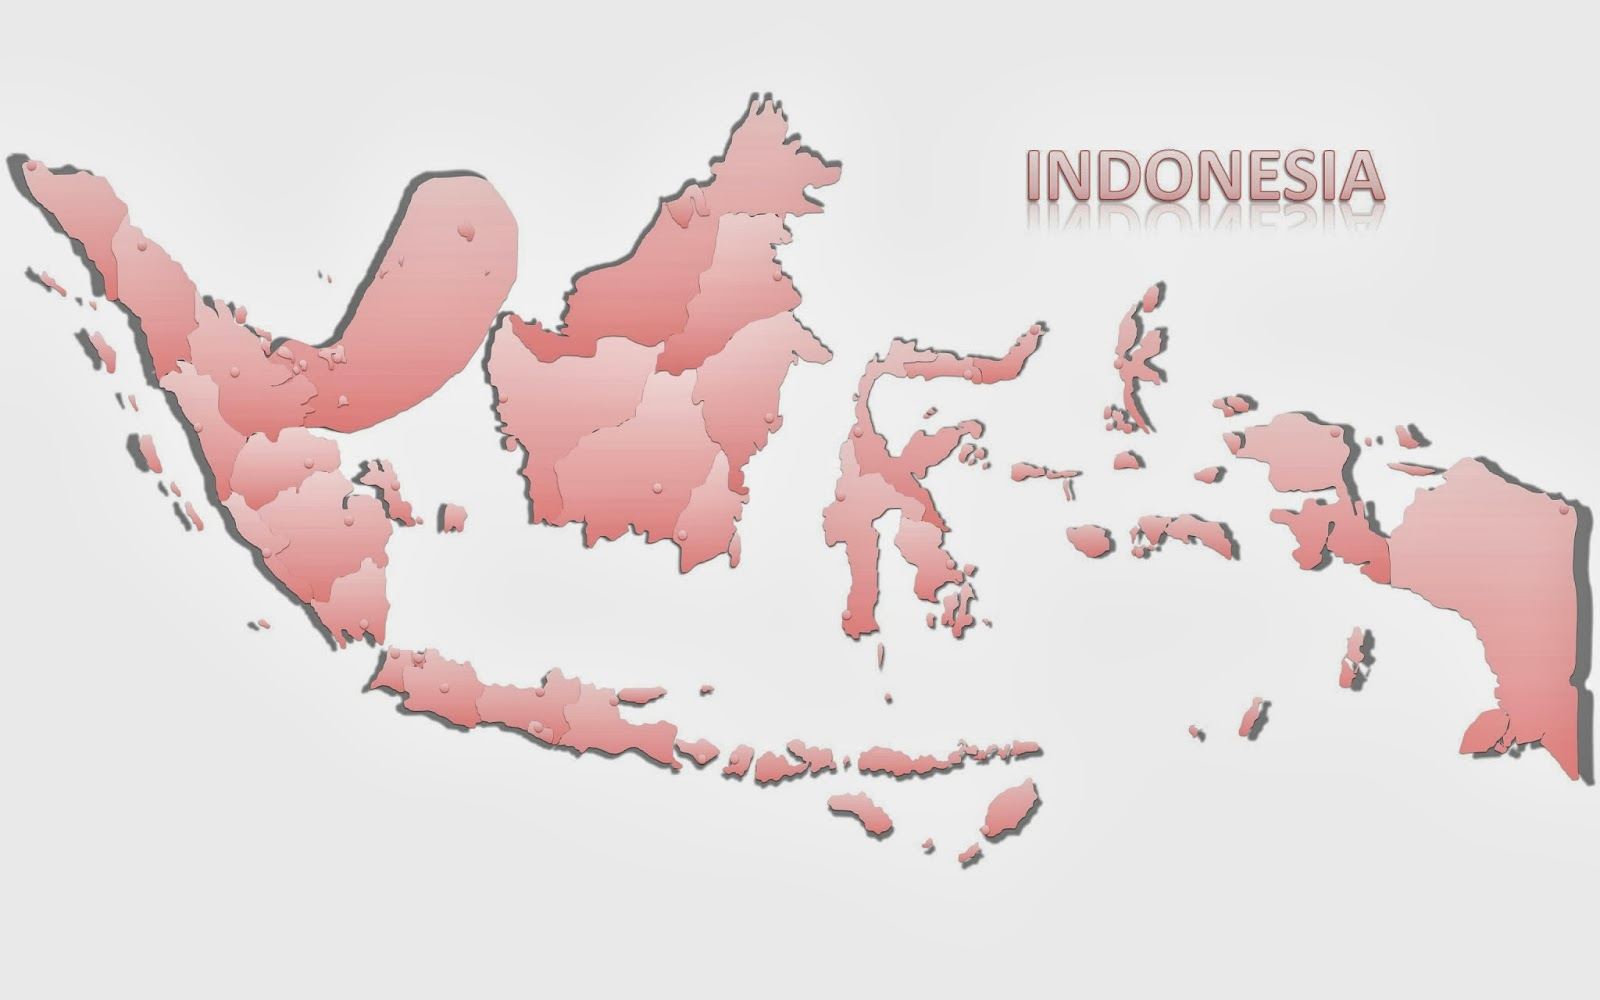 Peta Buta Indonesia 2013 update Kalimantan Utara